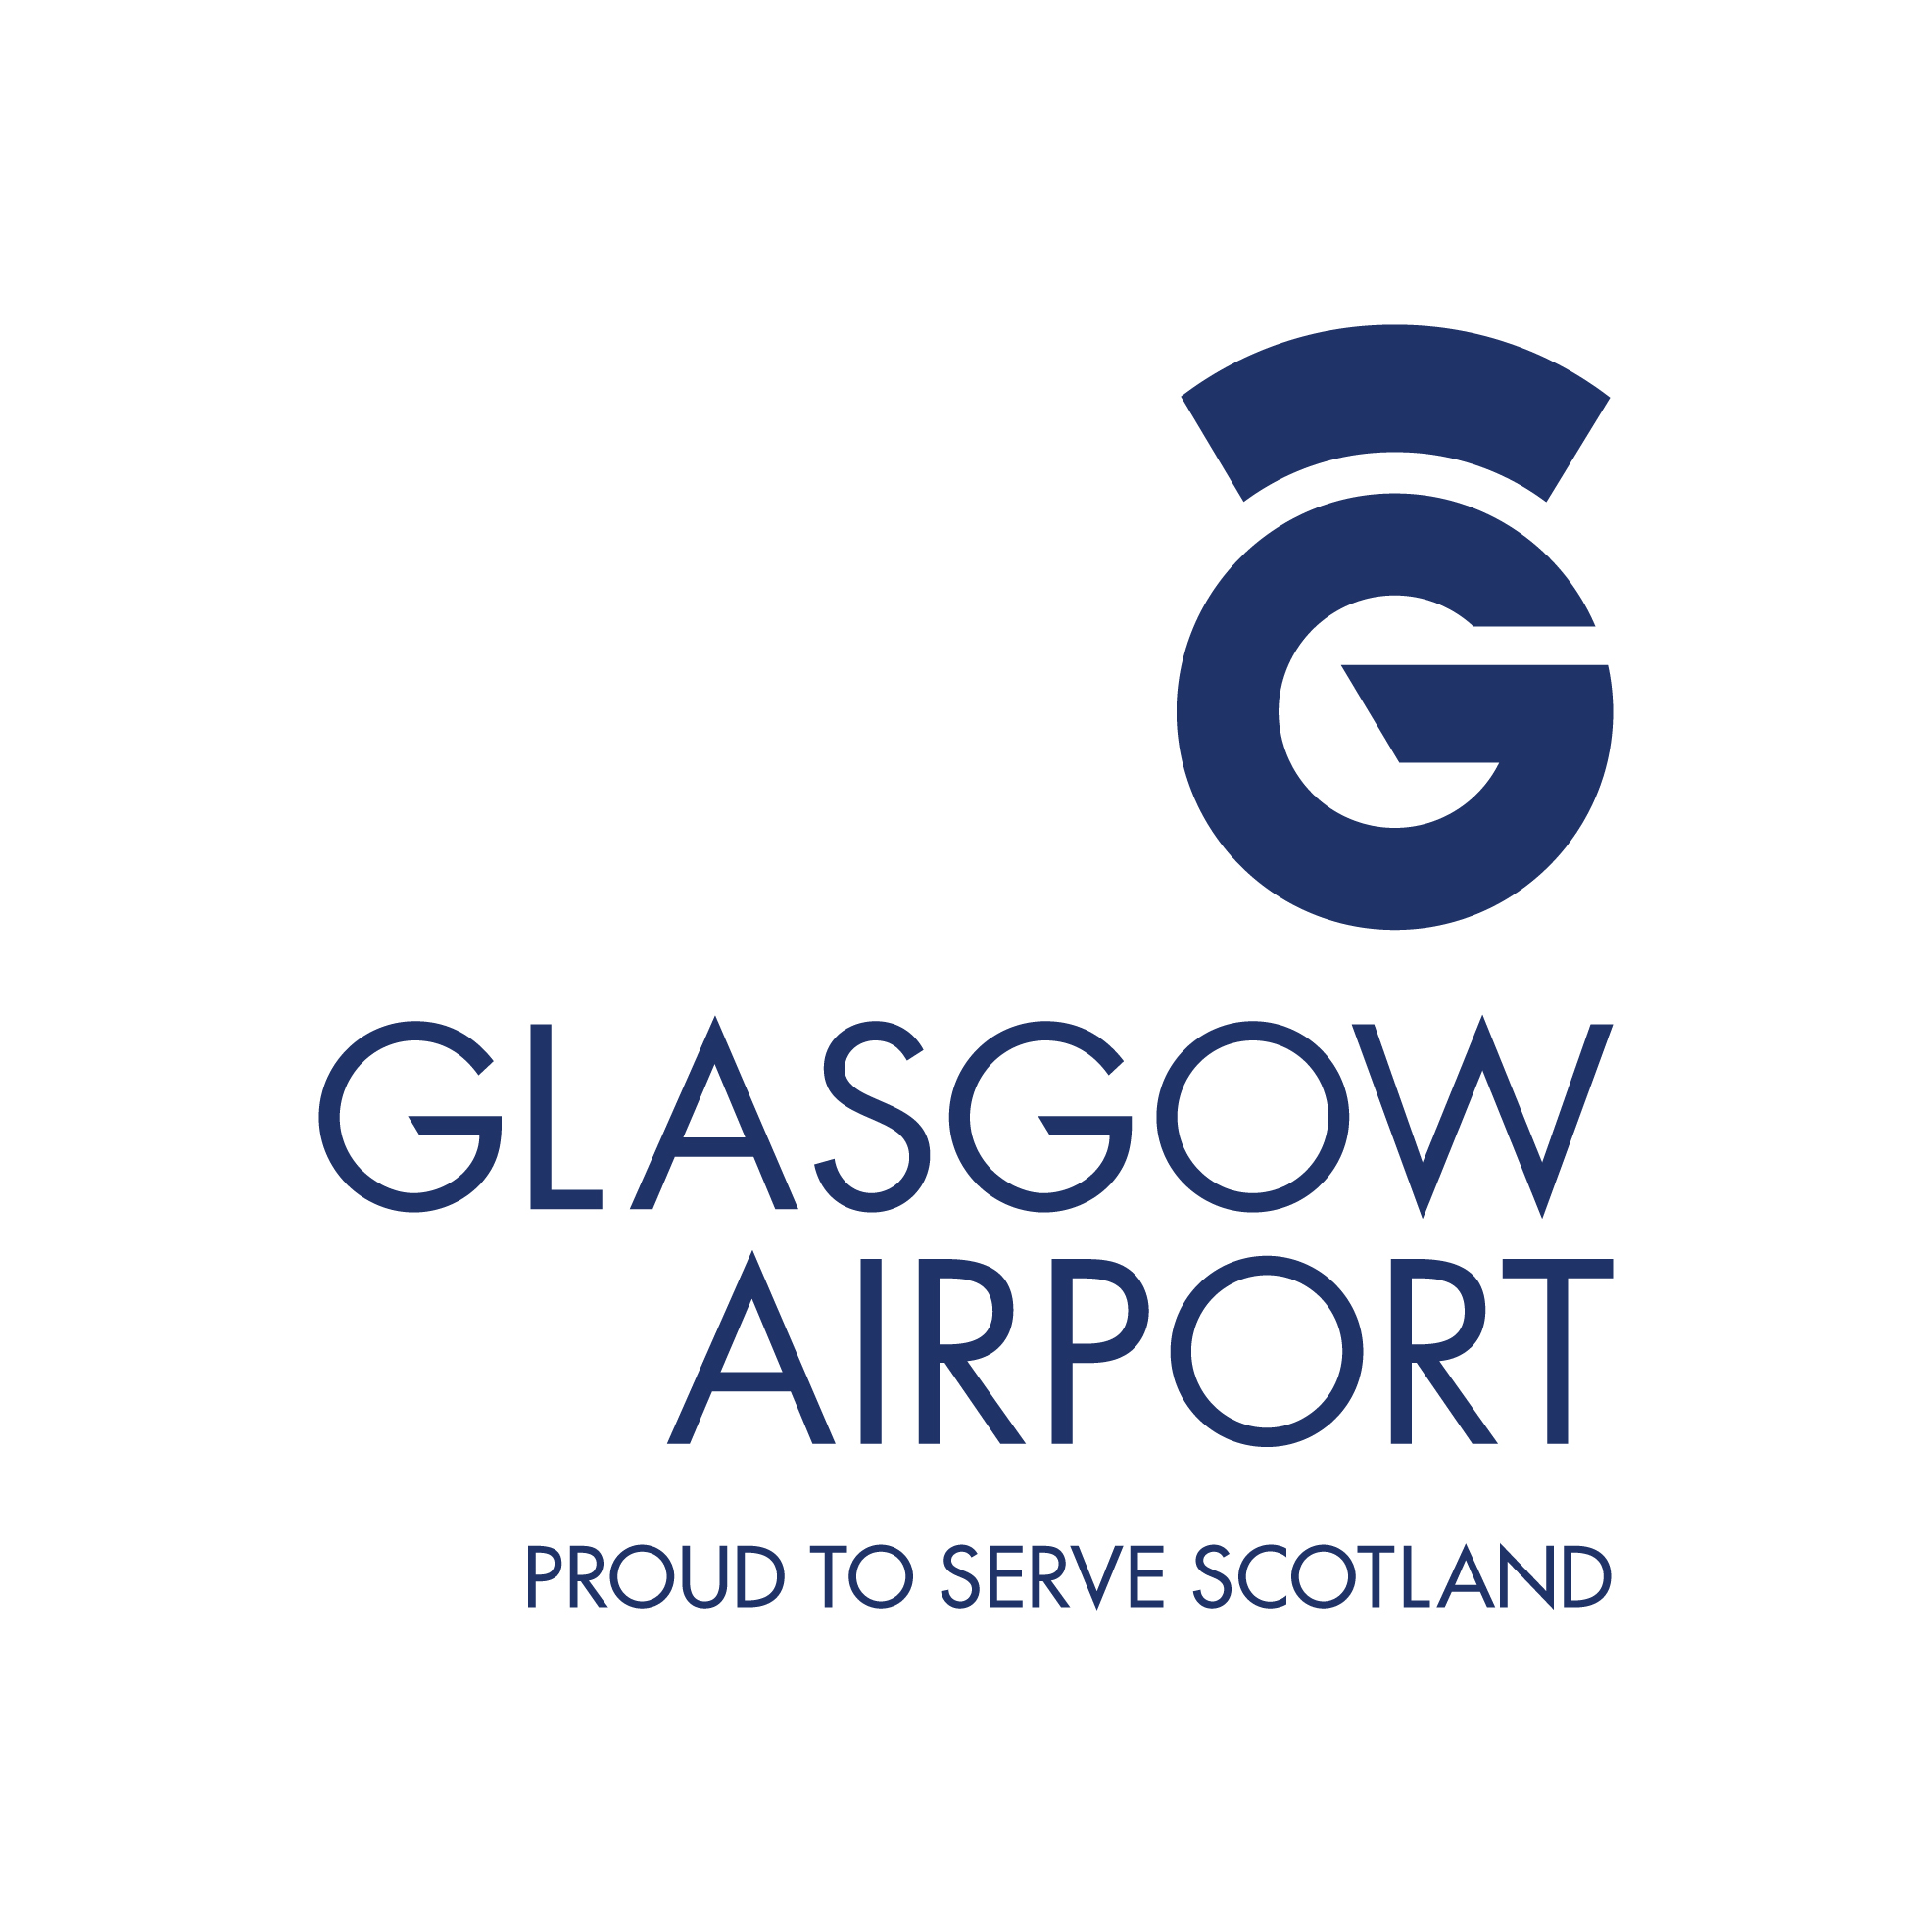 Glasgow Airport logo blue on white portrait.jpg